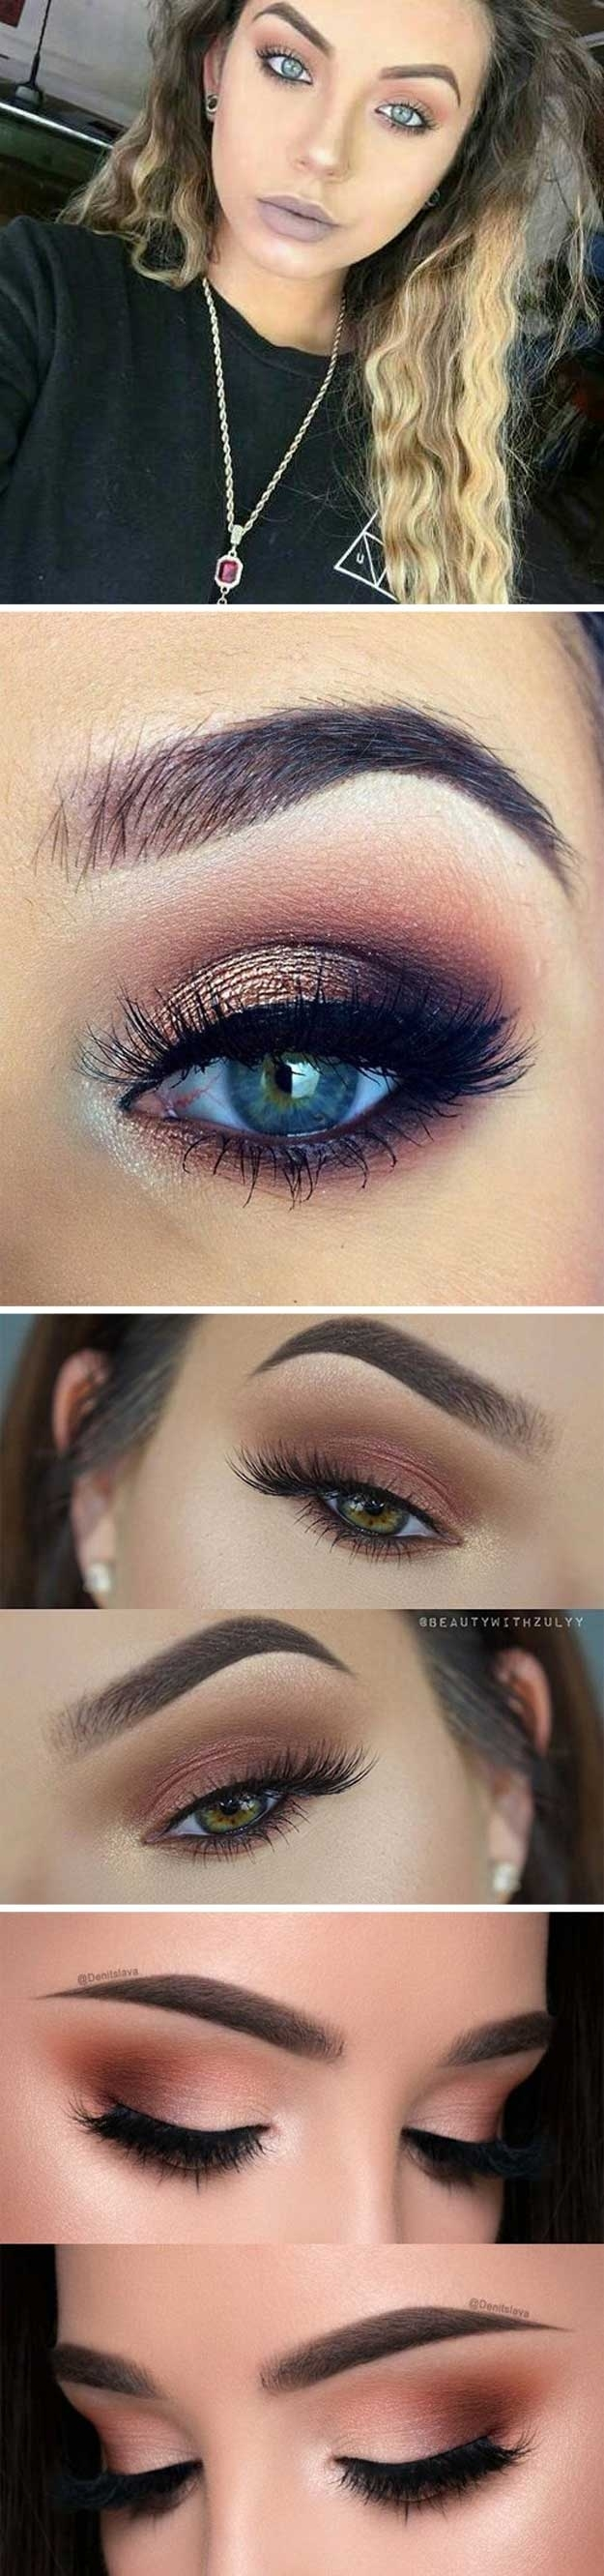 35 Wedding Makeup For Blue Eyes - The Goddess throughout Best Makeup Colors For Blue Eyes Fair Skin